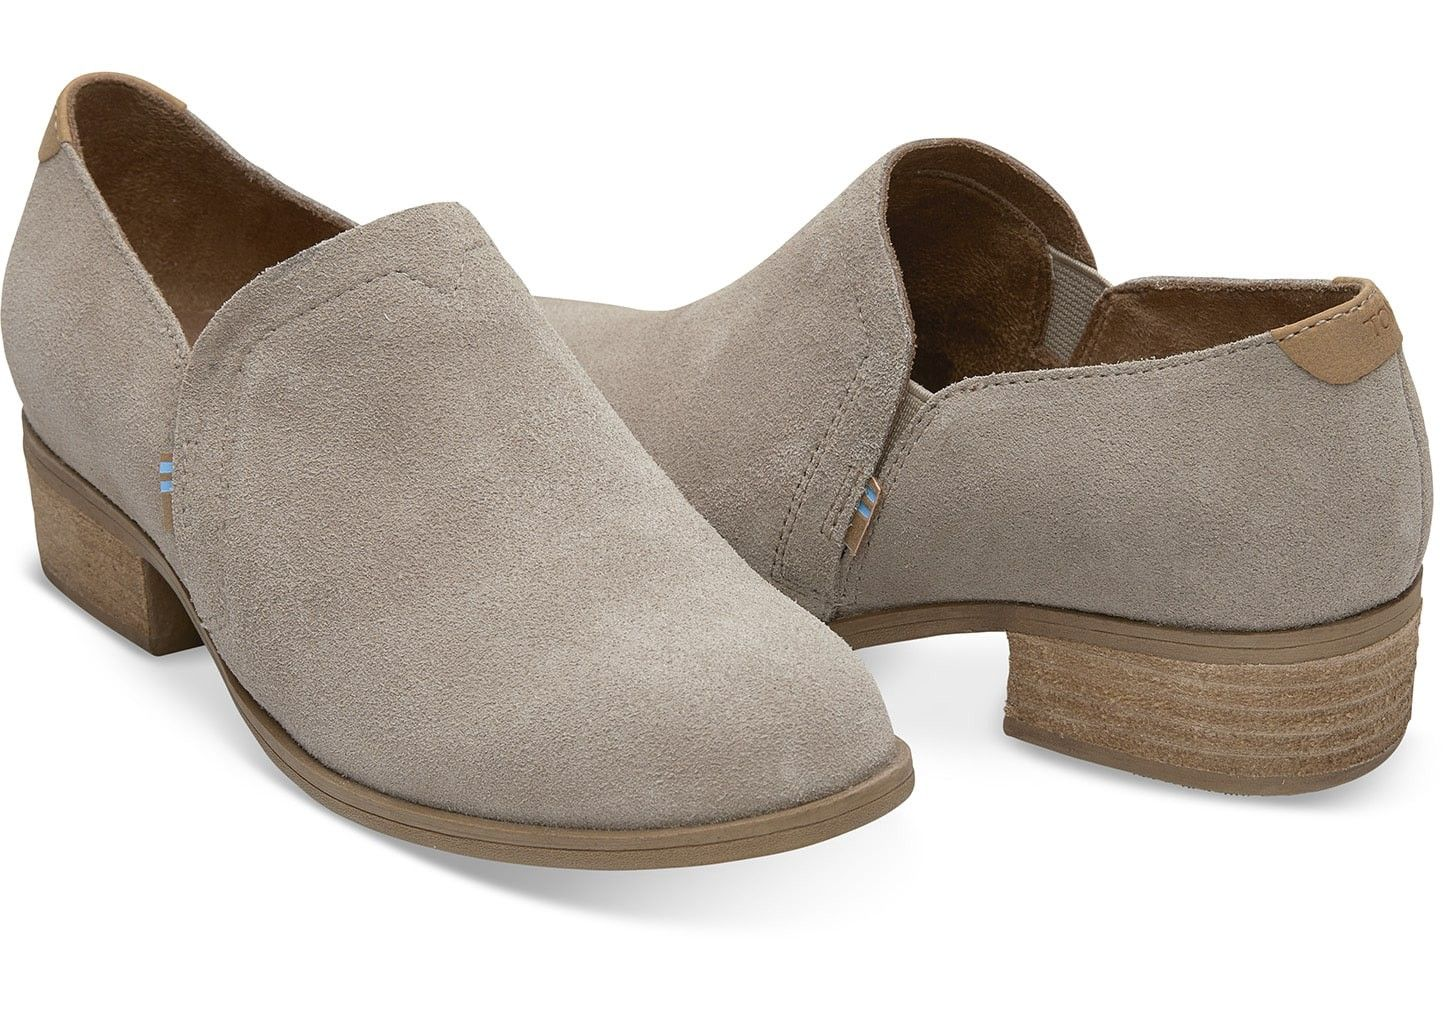 cdd21f124a3 Toms Desert Taupe Suede Women's Shaye Booties - 9.5 Brown in 2019 ...